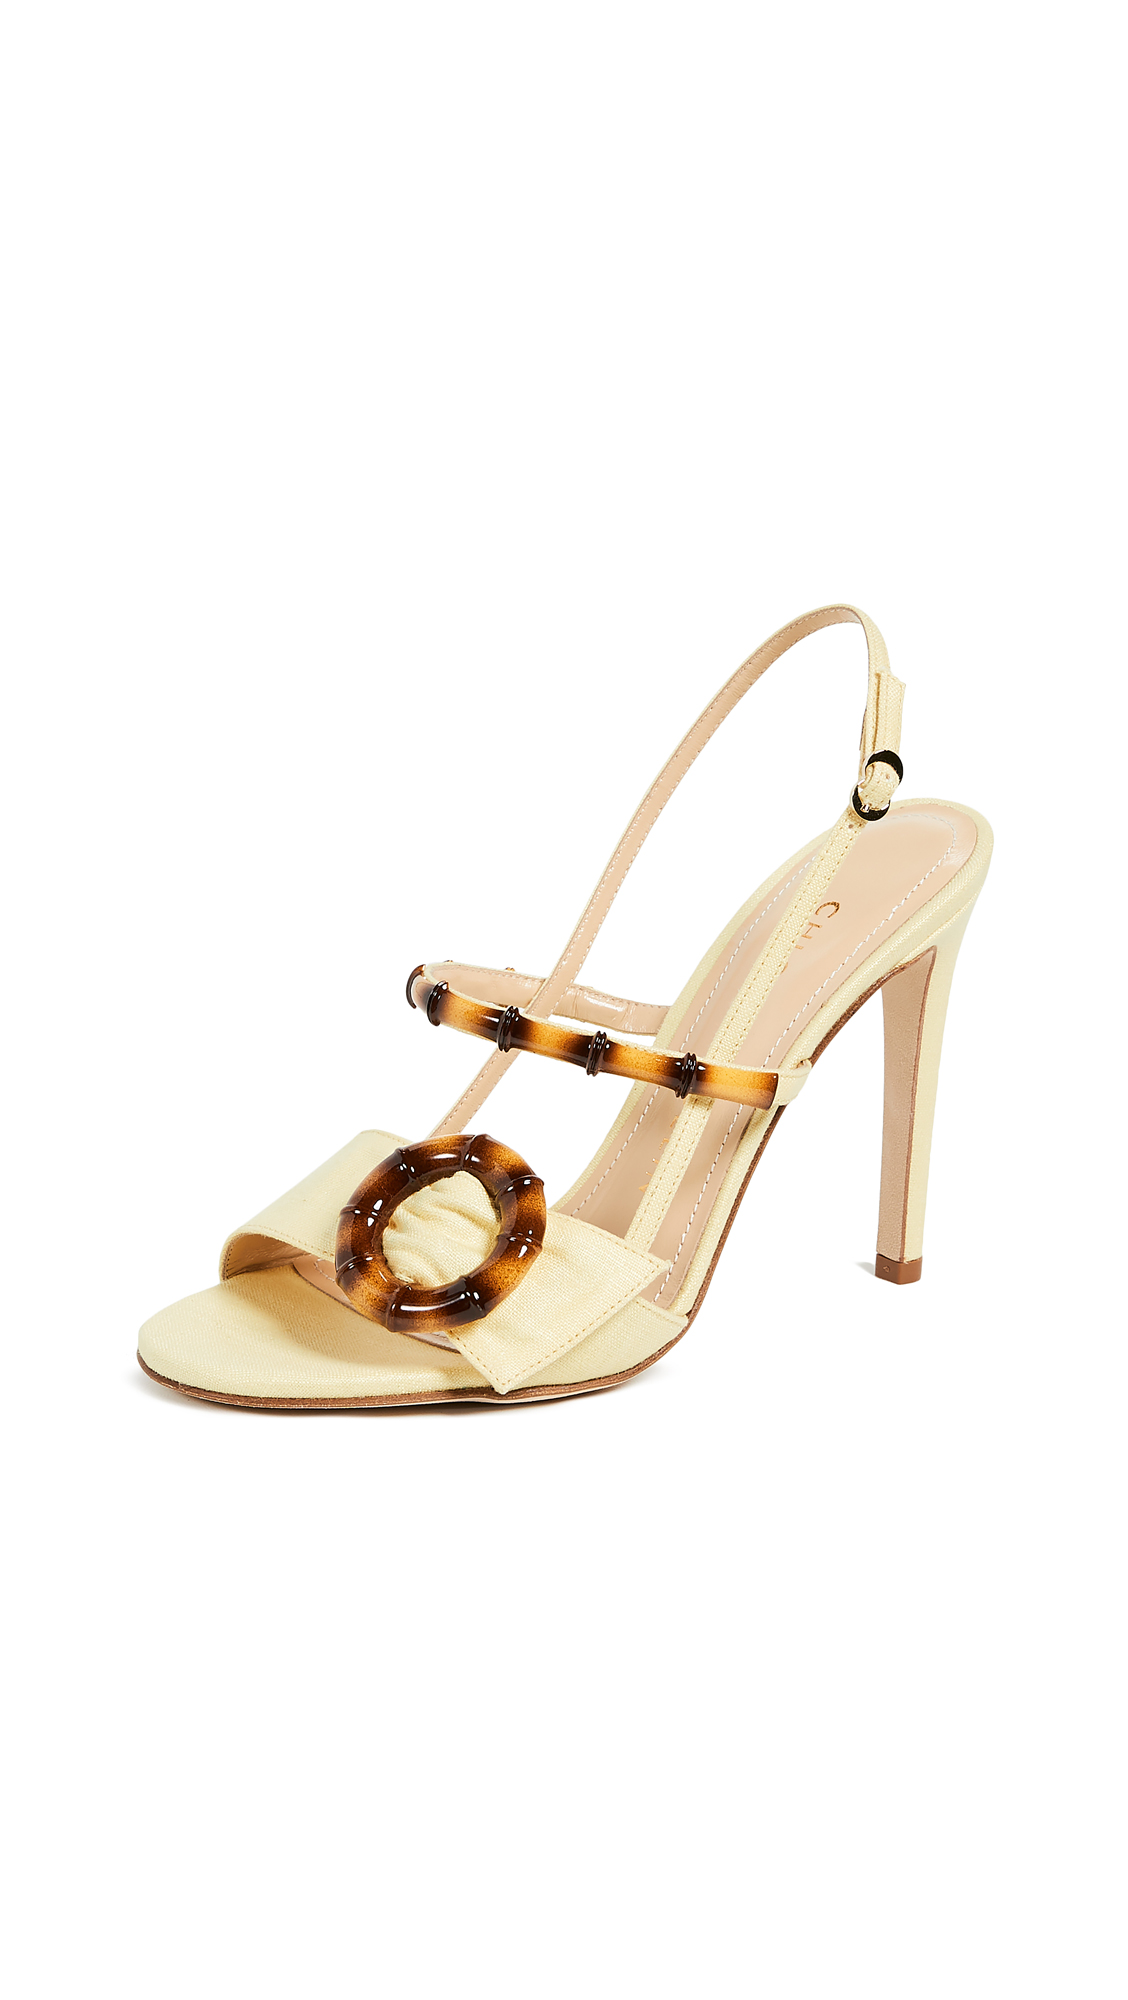 Chloe Gosselin Celeste Sandals - Lemon